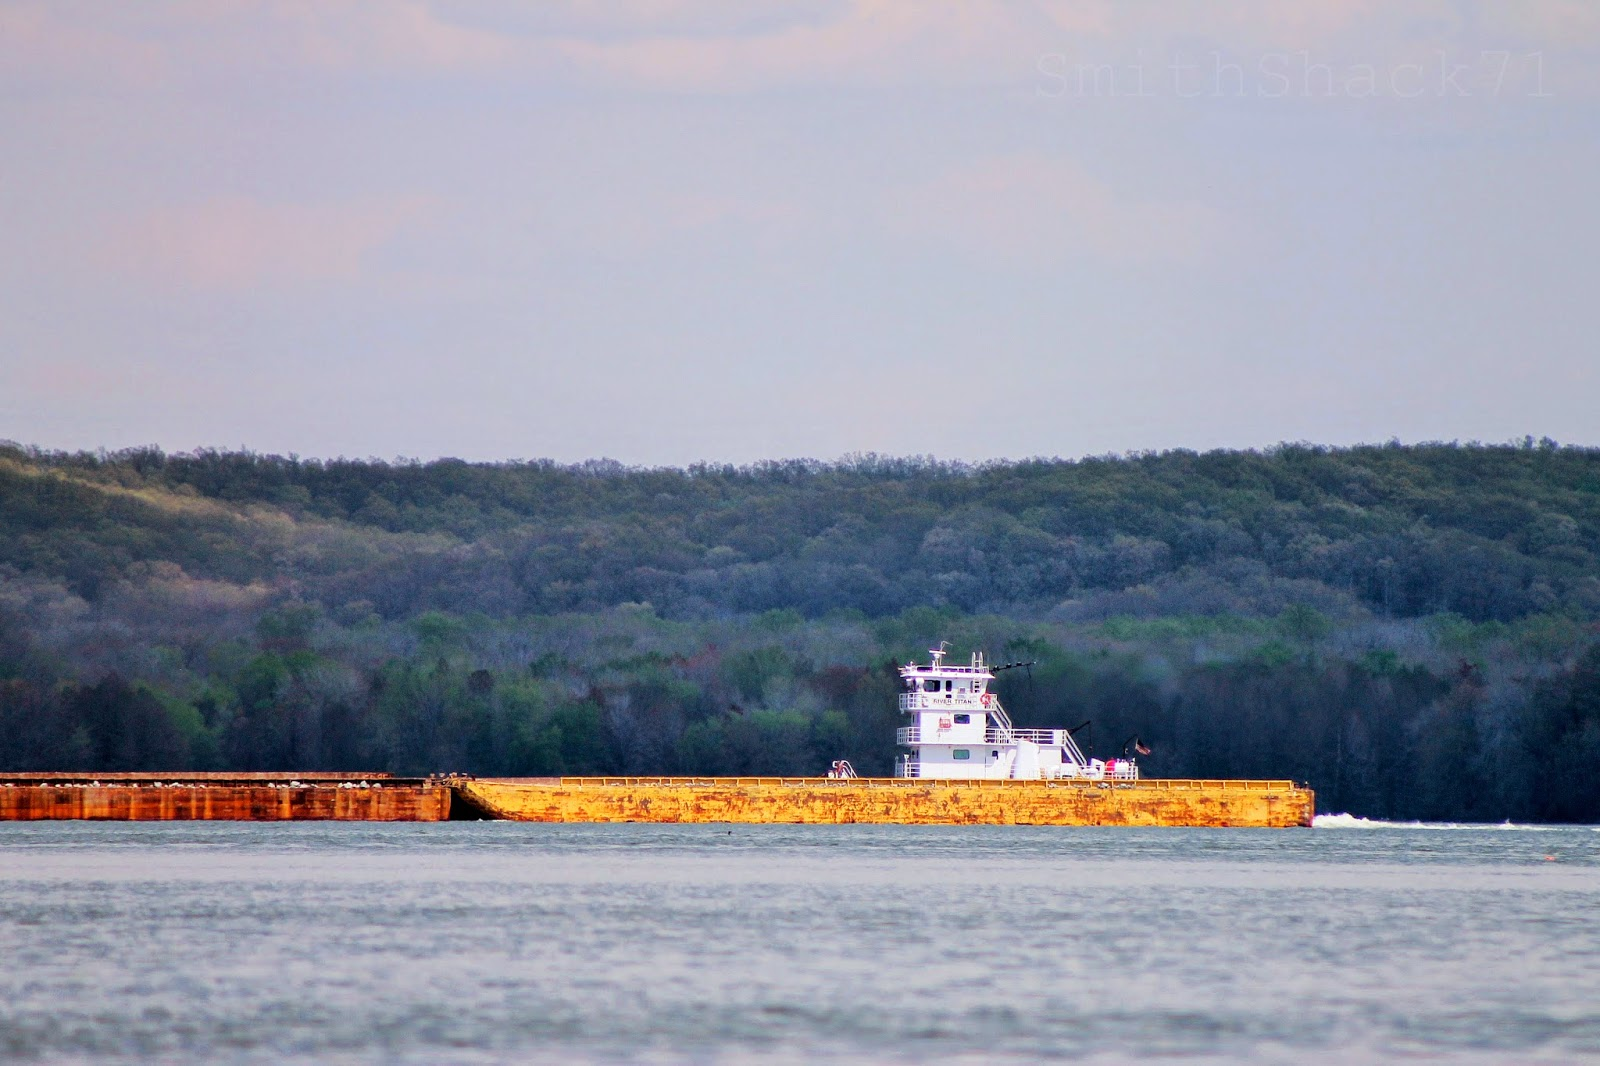 Kentucky lake barge